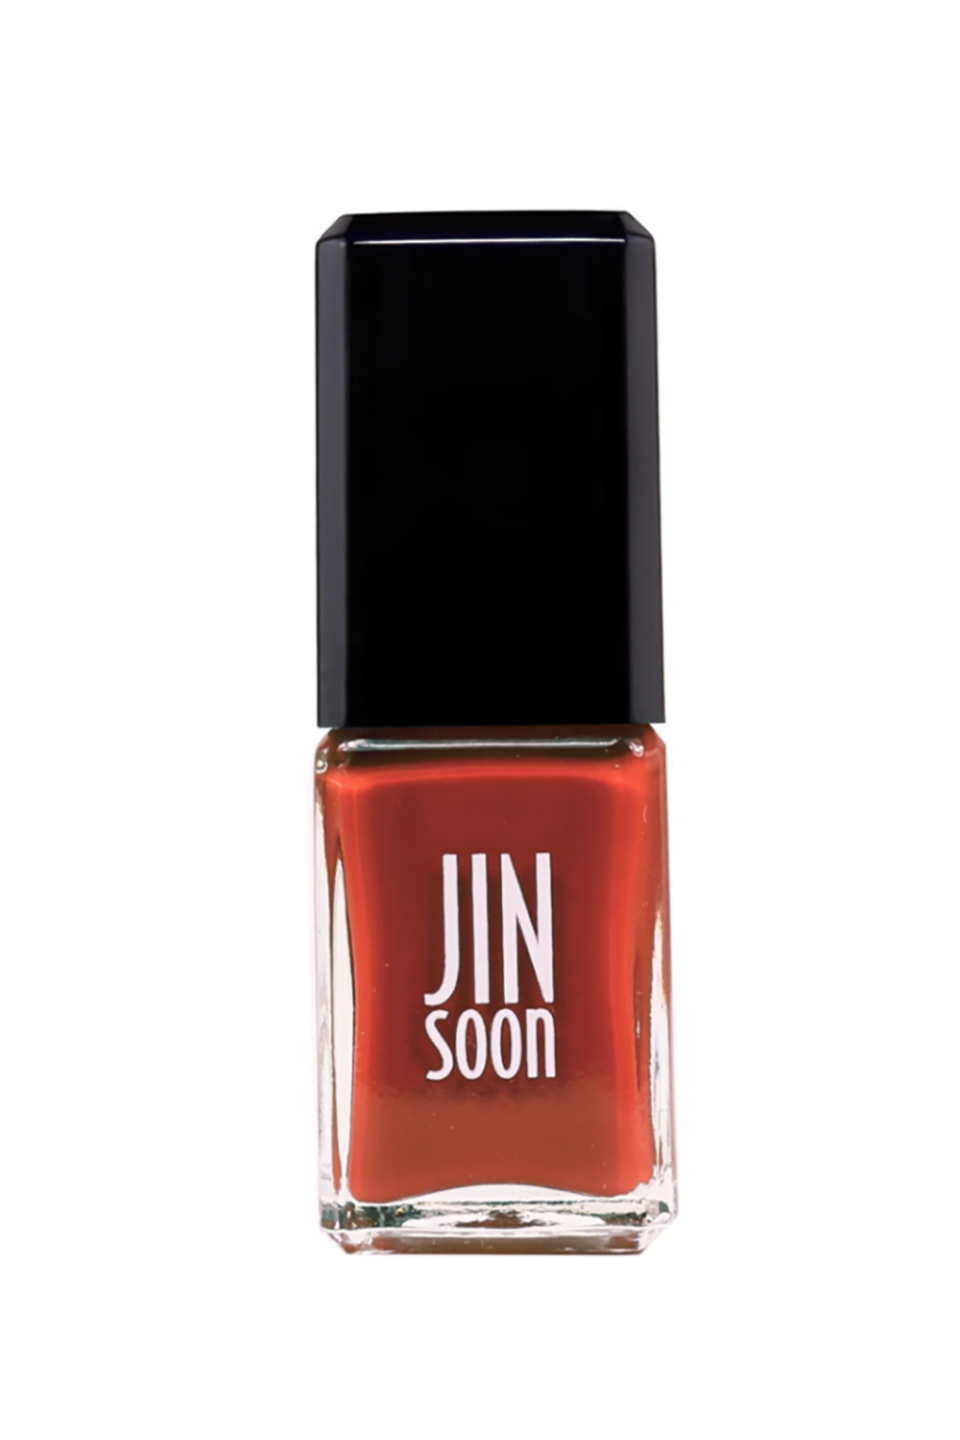 """<p><strong>JINsoon Nail Polish in Idyll</strong></p><p>barneys.com</p><p><strong>$18.00</strong></p><p><a href=""""https://www.barneys.com/product/jinsoon-nail-polish-505428136.html?gclid=EAIaIQobChMIpJ_DsKe15AIVCJyzCh1F4QnREAYYAiABEgLIJ_D_BwE&gclsrc=aw.ds"""" rel=""""nofollow noopener"""" target=""""_blank"""" data-ylk=""""slk:SHOP IT"""" class=""""link rapid-noclick-resp"""">SHOP IT</a></p><p>Swap out your bright reds for this brick-toned shade with hints of brown and orange that make this warm hue feel extra special. </p>"""